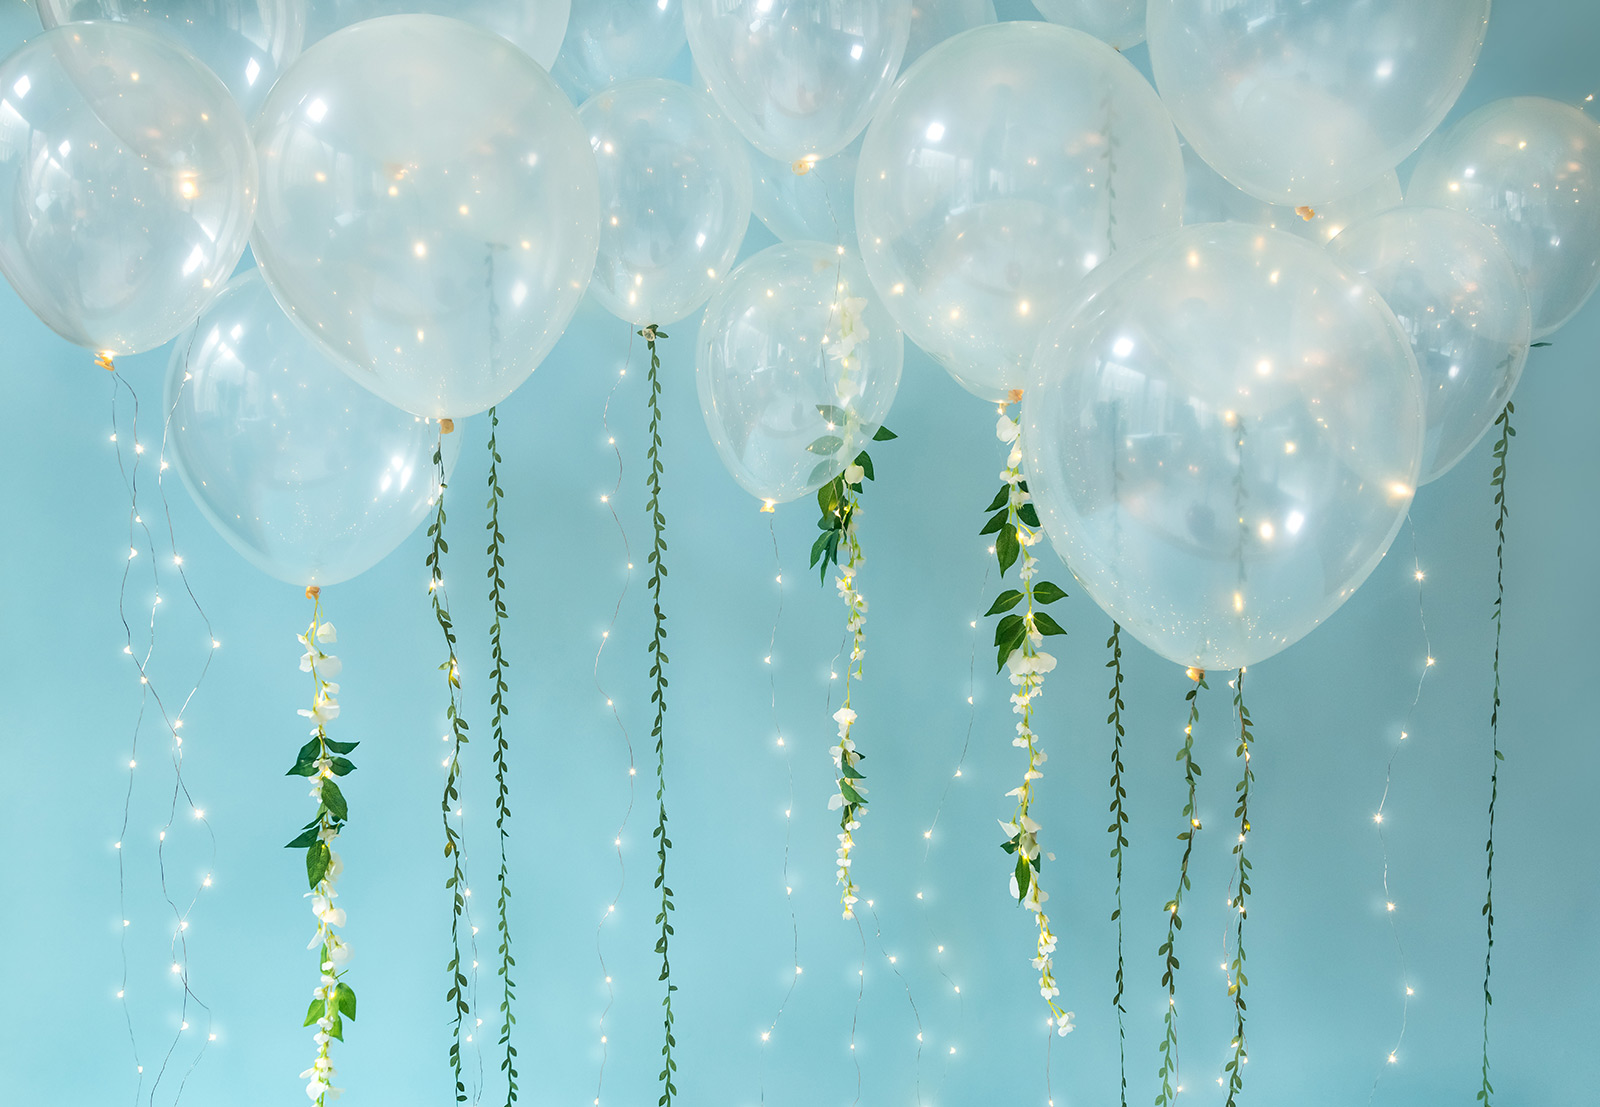 Decorative balloons with string lights